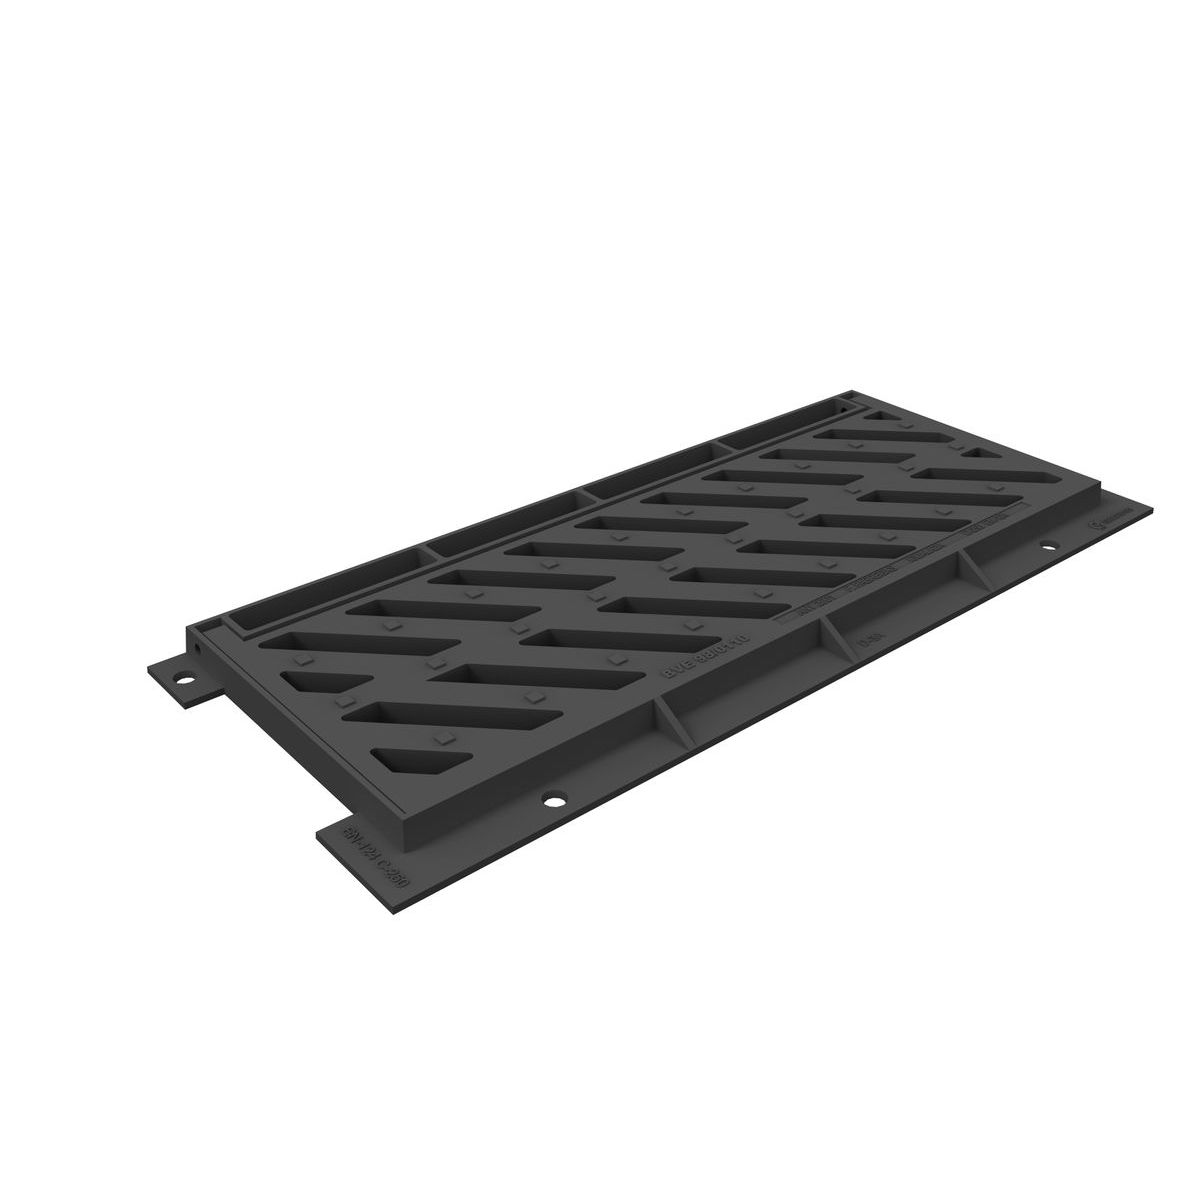 Grille et cadre inclinable IMPUdiagonal D-3AD